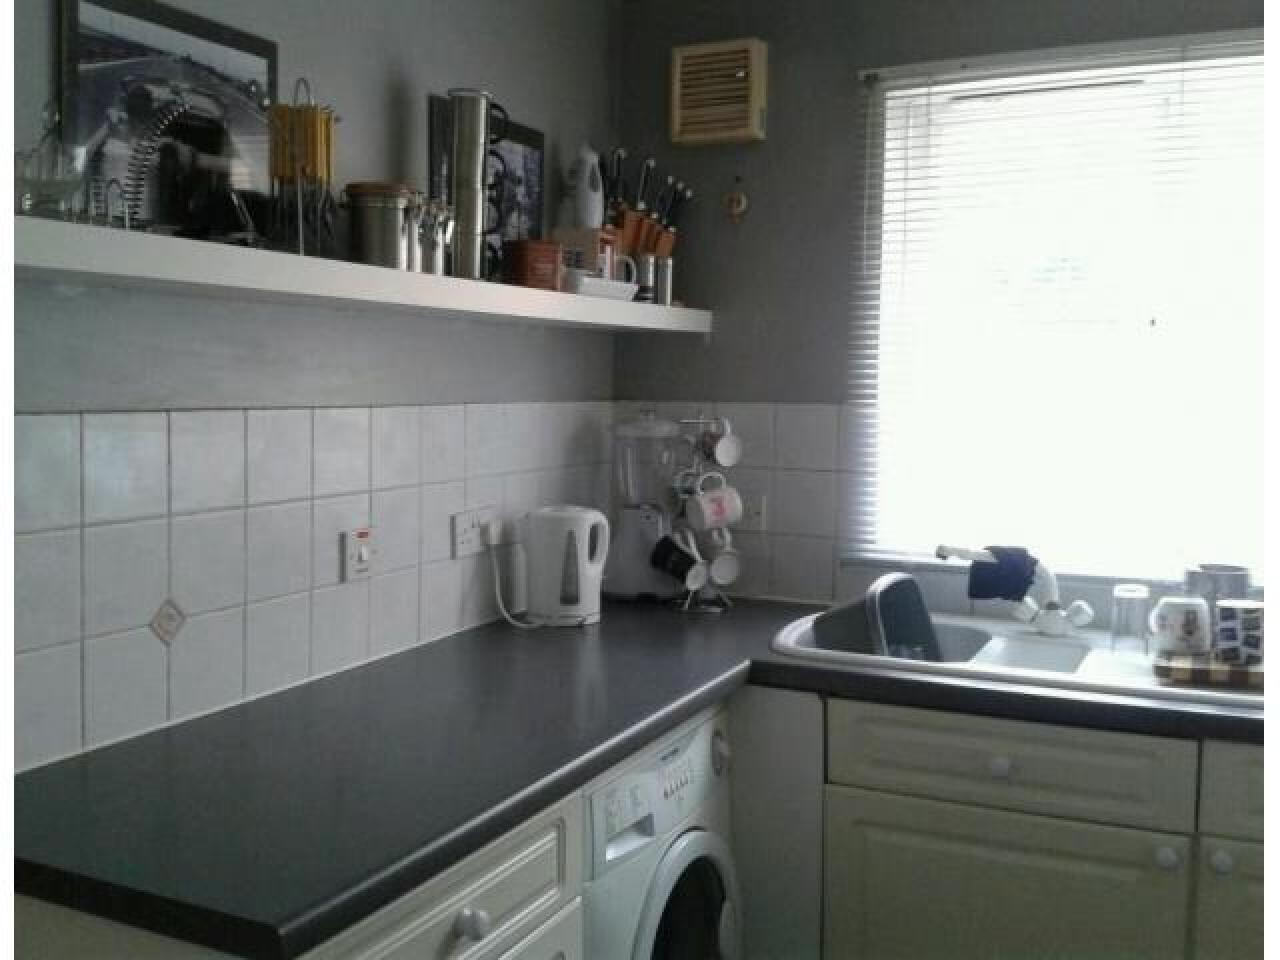 3 Bed House, Keel Close Barking, IG1 1 650 £ — Available Now - 8